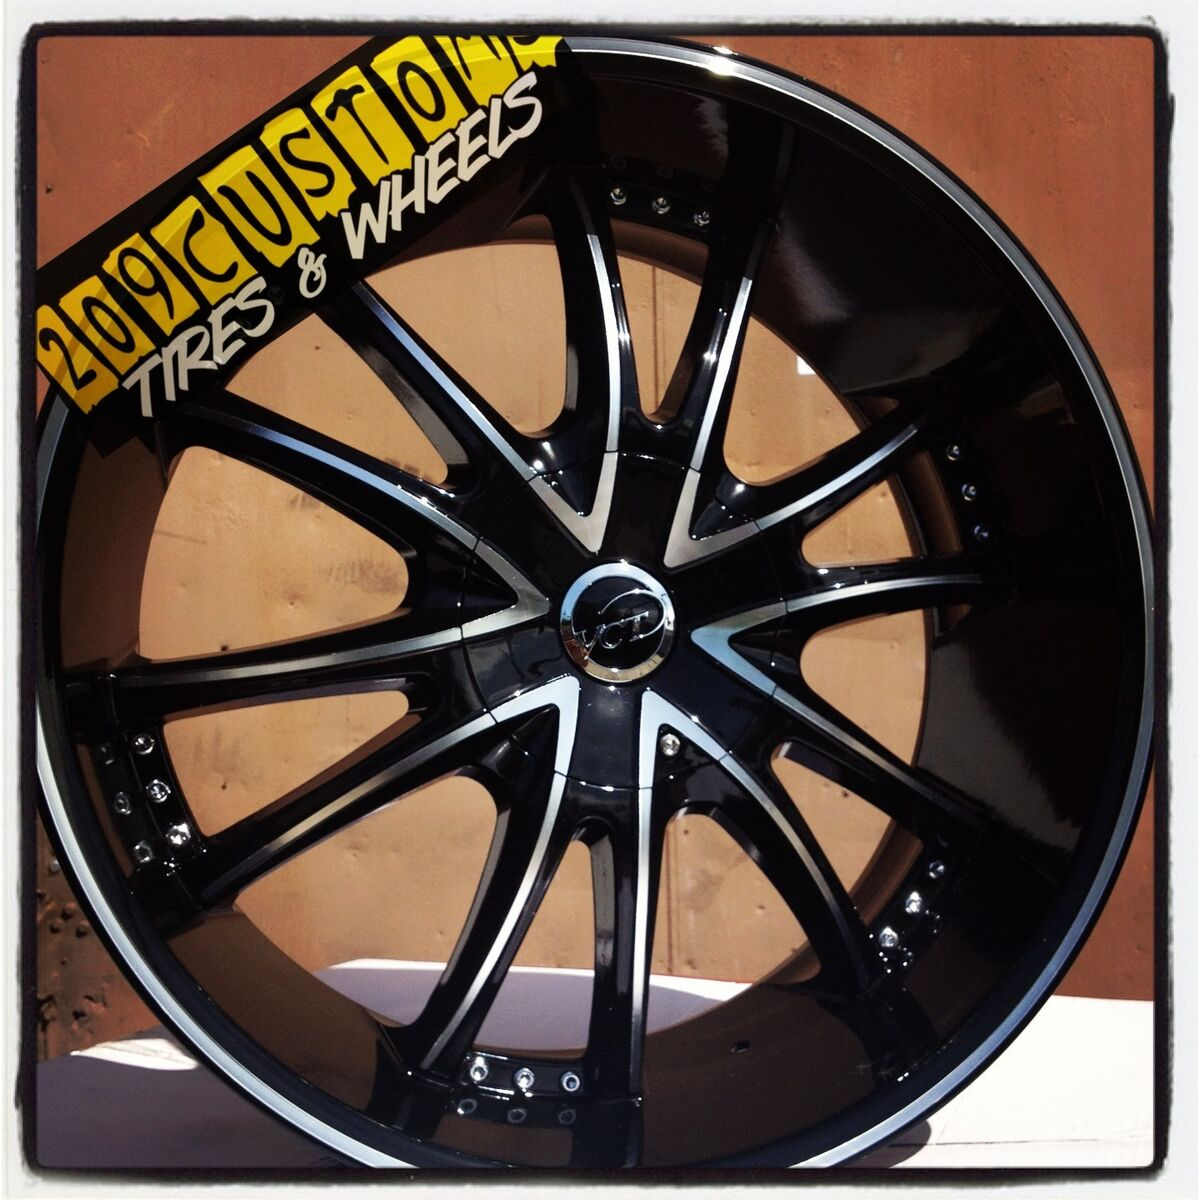 22 INCH 22 BOSSINI VCT BLACK WHEELS RIMS TIRES 5X115 CHRYSLER 300 2007